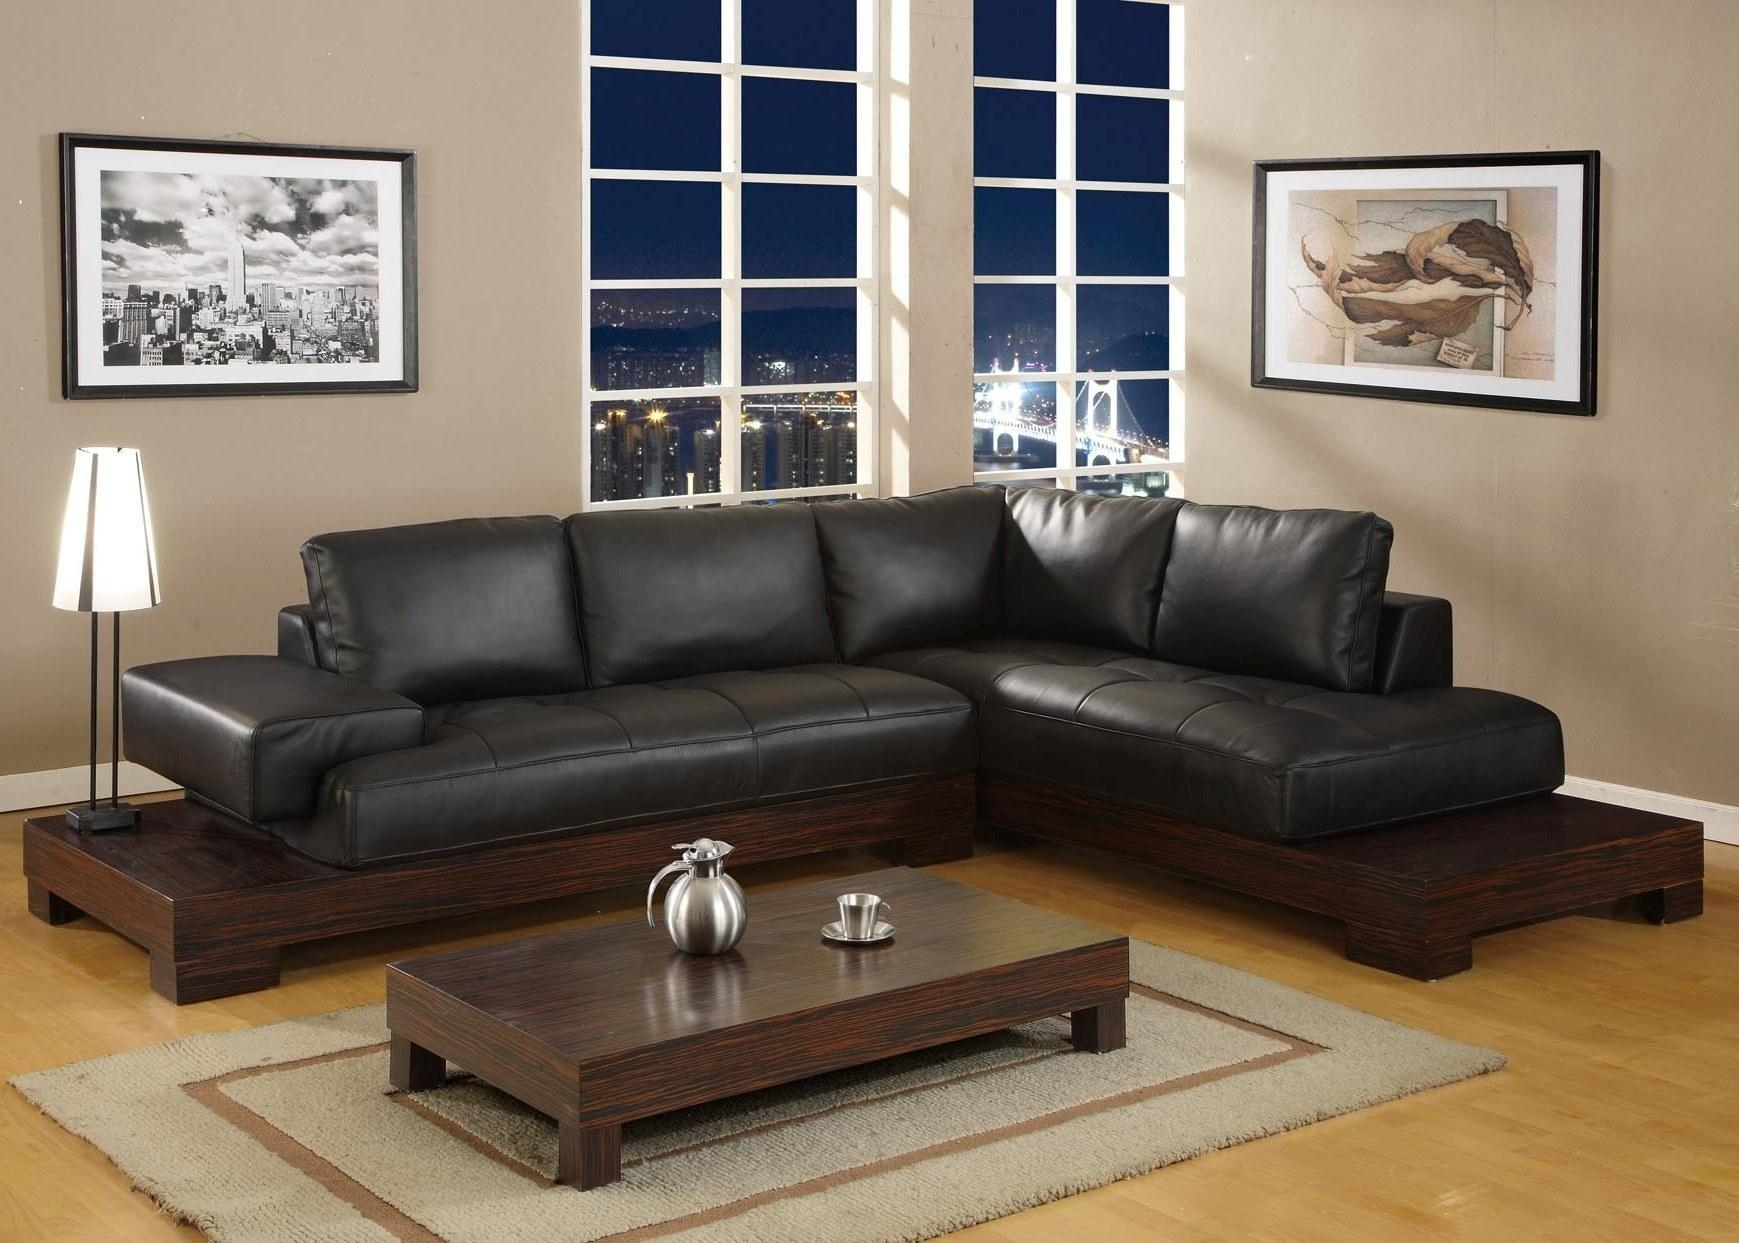 Decorating Your Home Decoration With Amazing Awesome Living Room Pertaining To Black Sofas Decors (View 17 of 20)